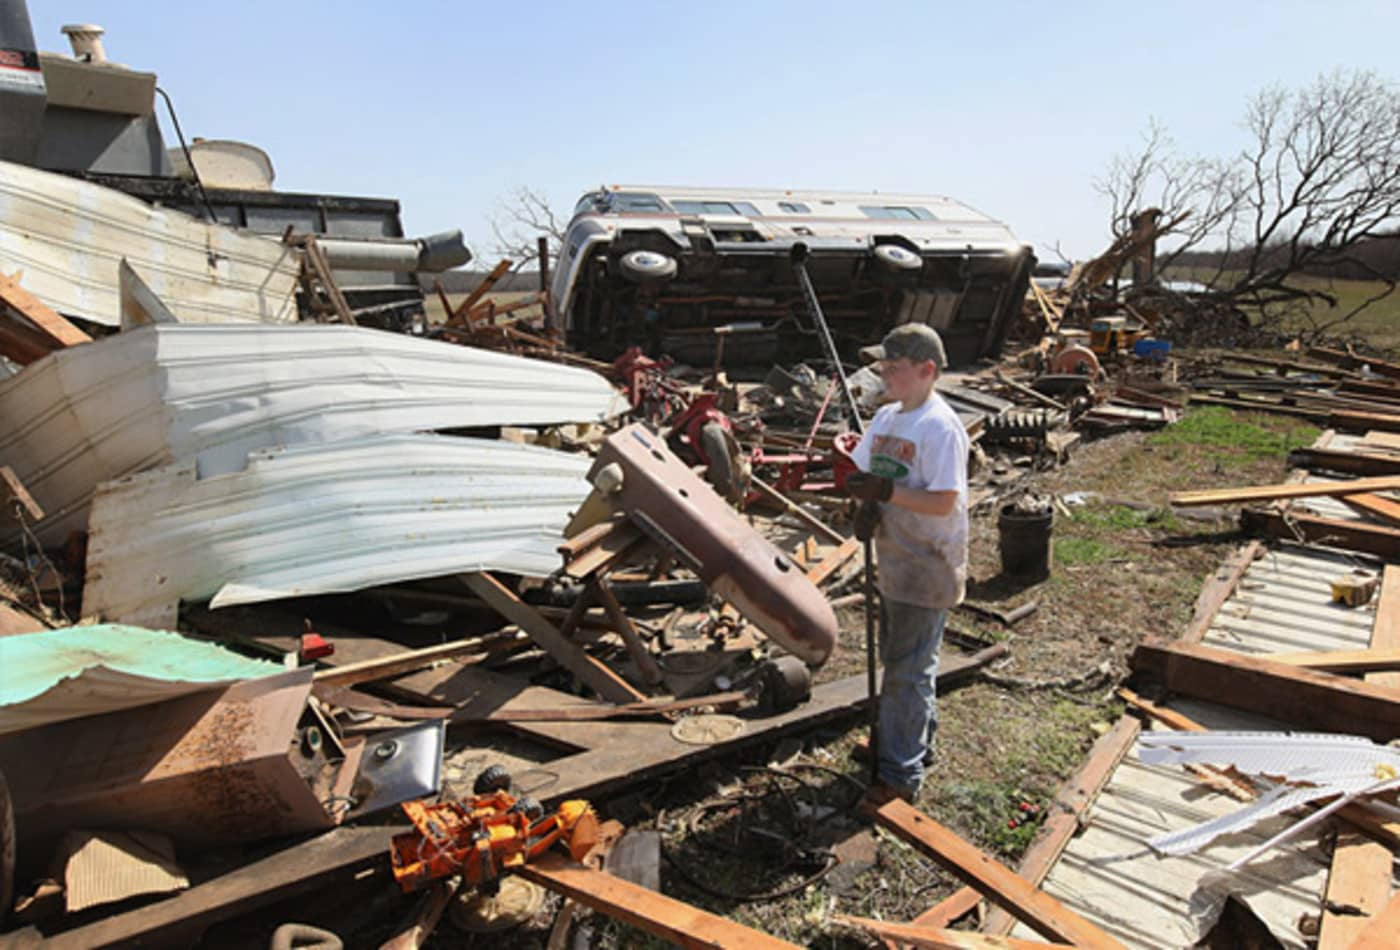 scenes-from-the-midwest-tornadoes-young-boy.jpg